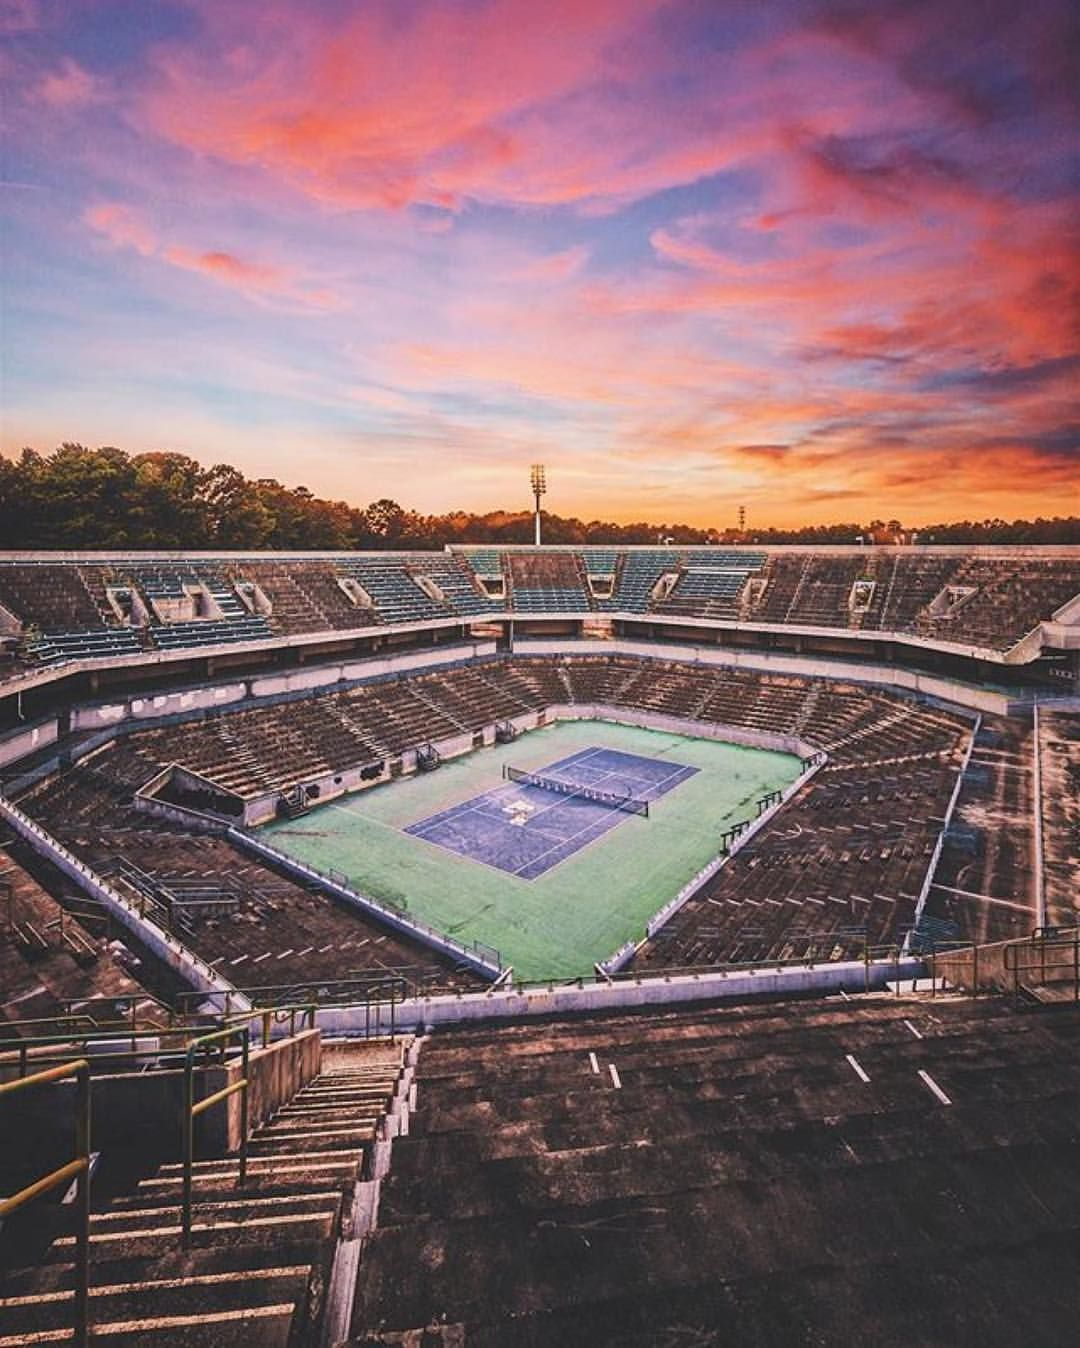 The Abandoned Stone Mountain Tennis Center. About 30